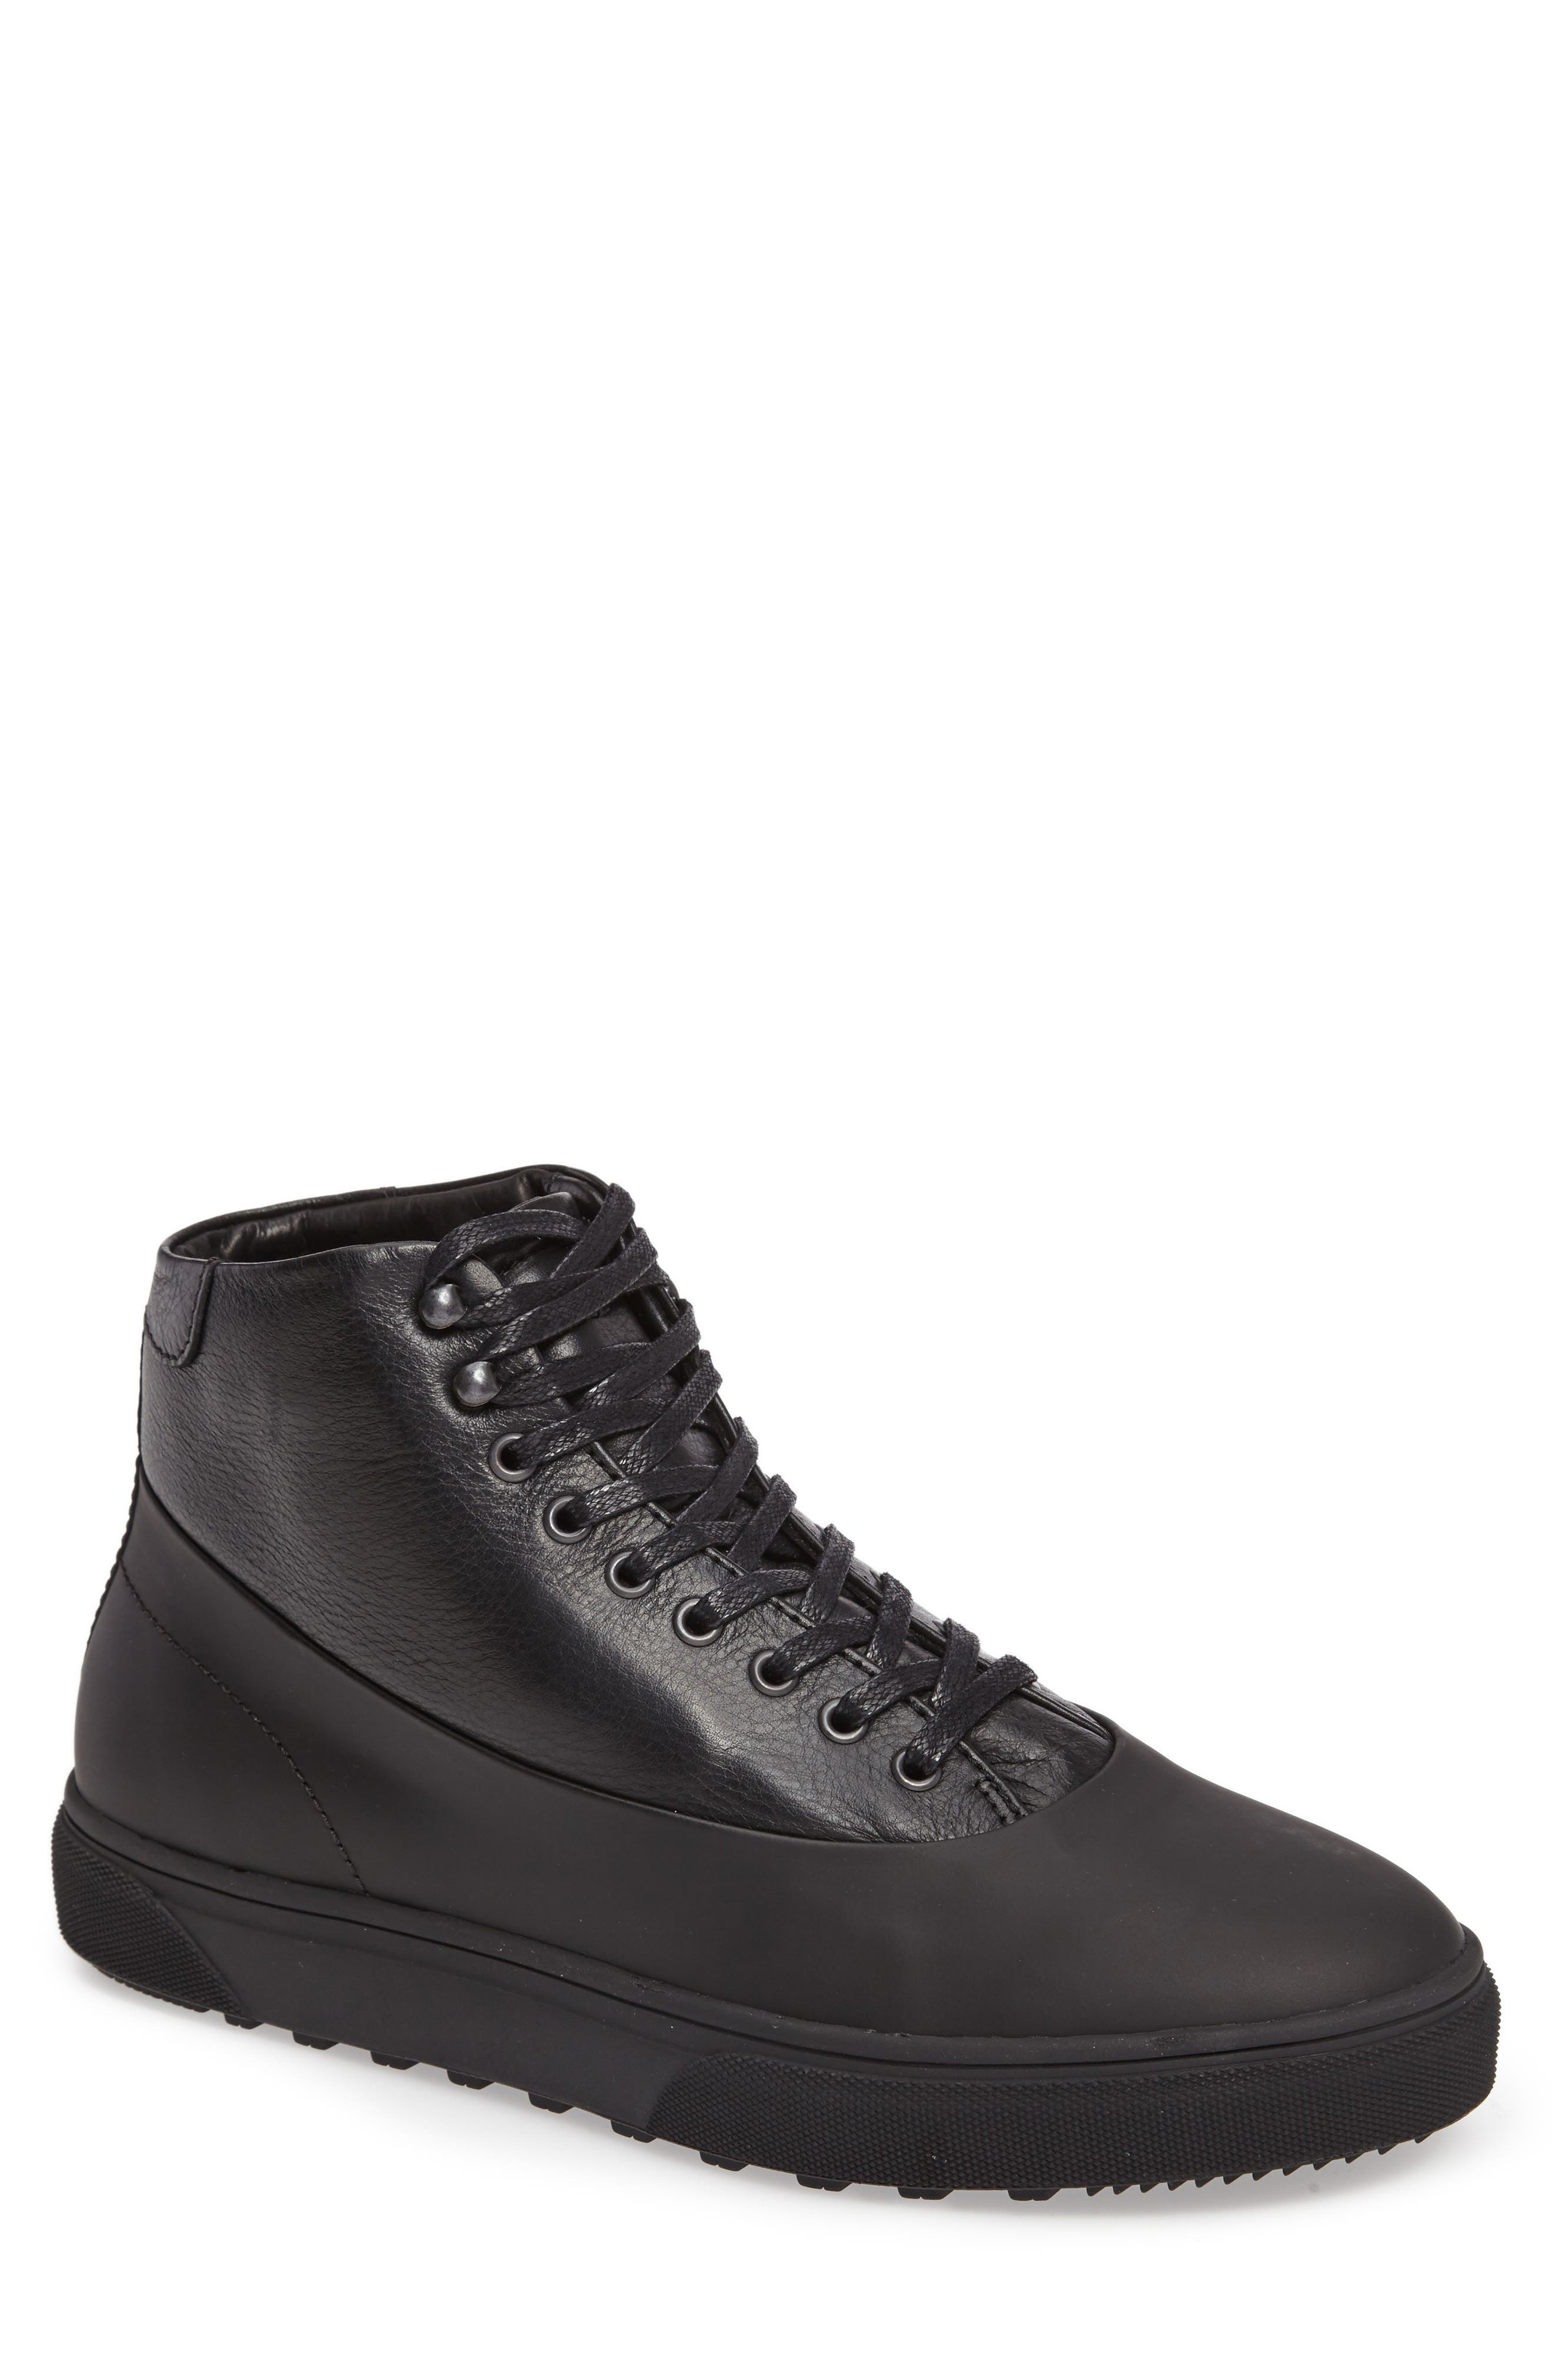 Wayland High Top Sneaker,                             Main thumbnail 1, color,